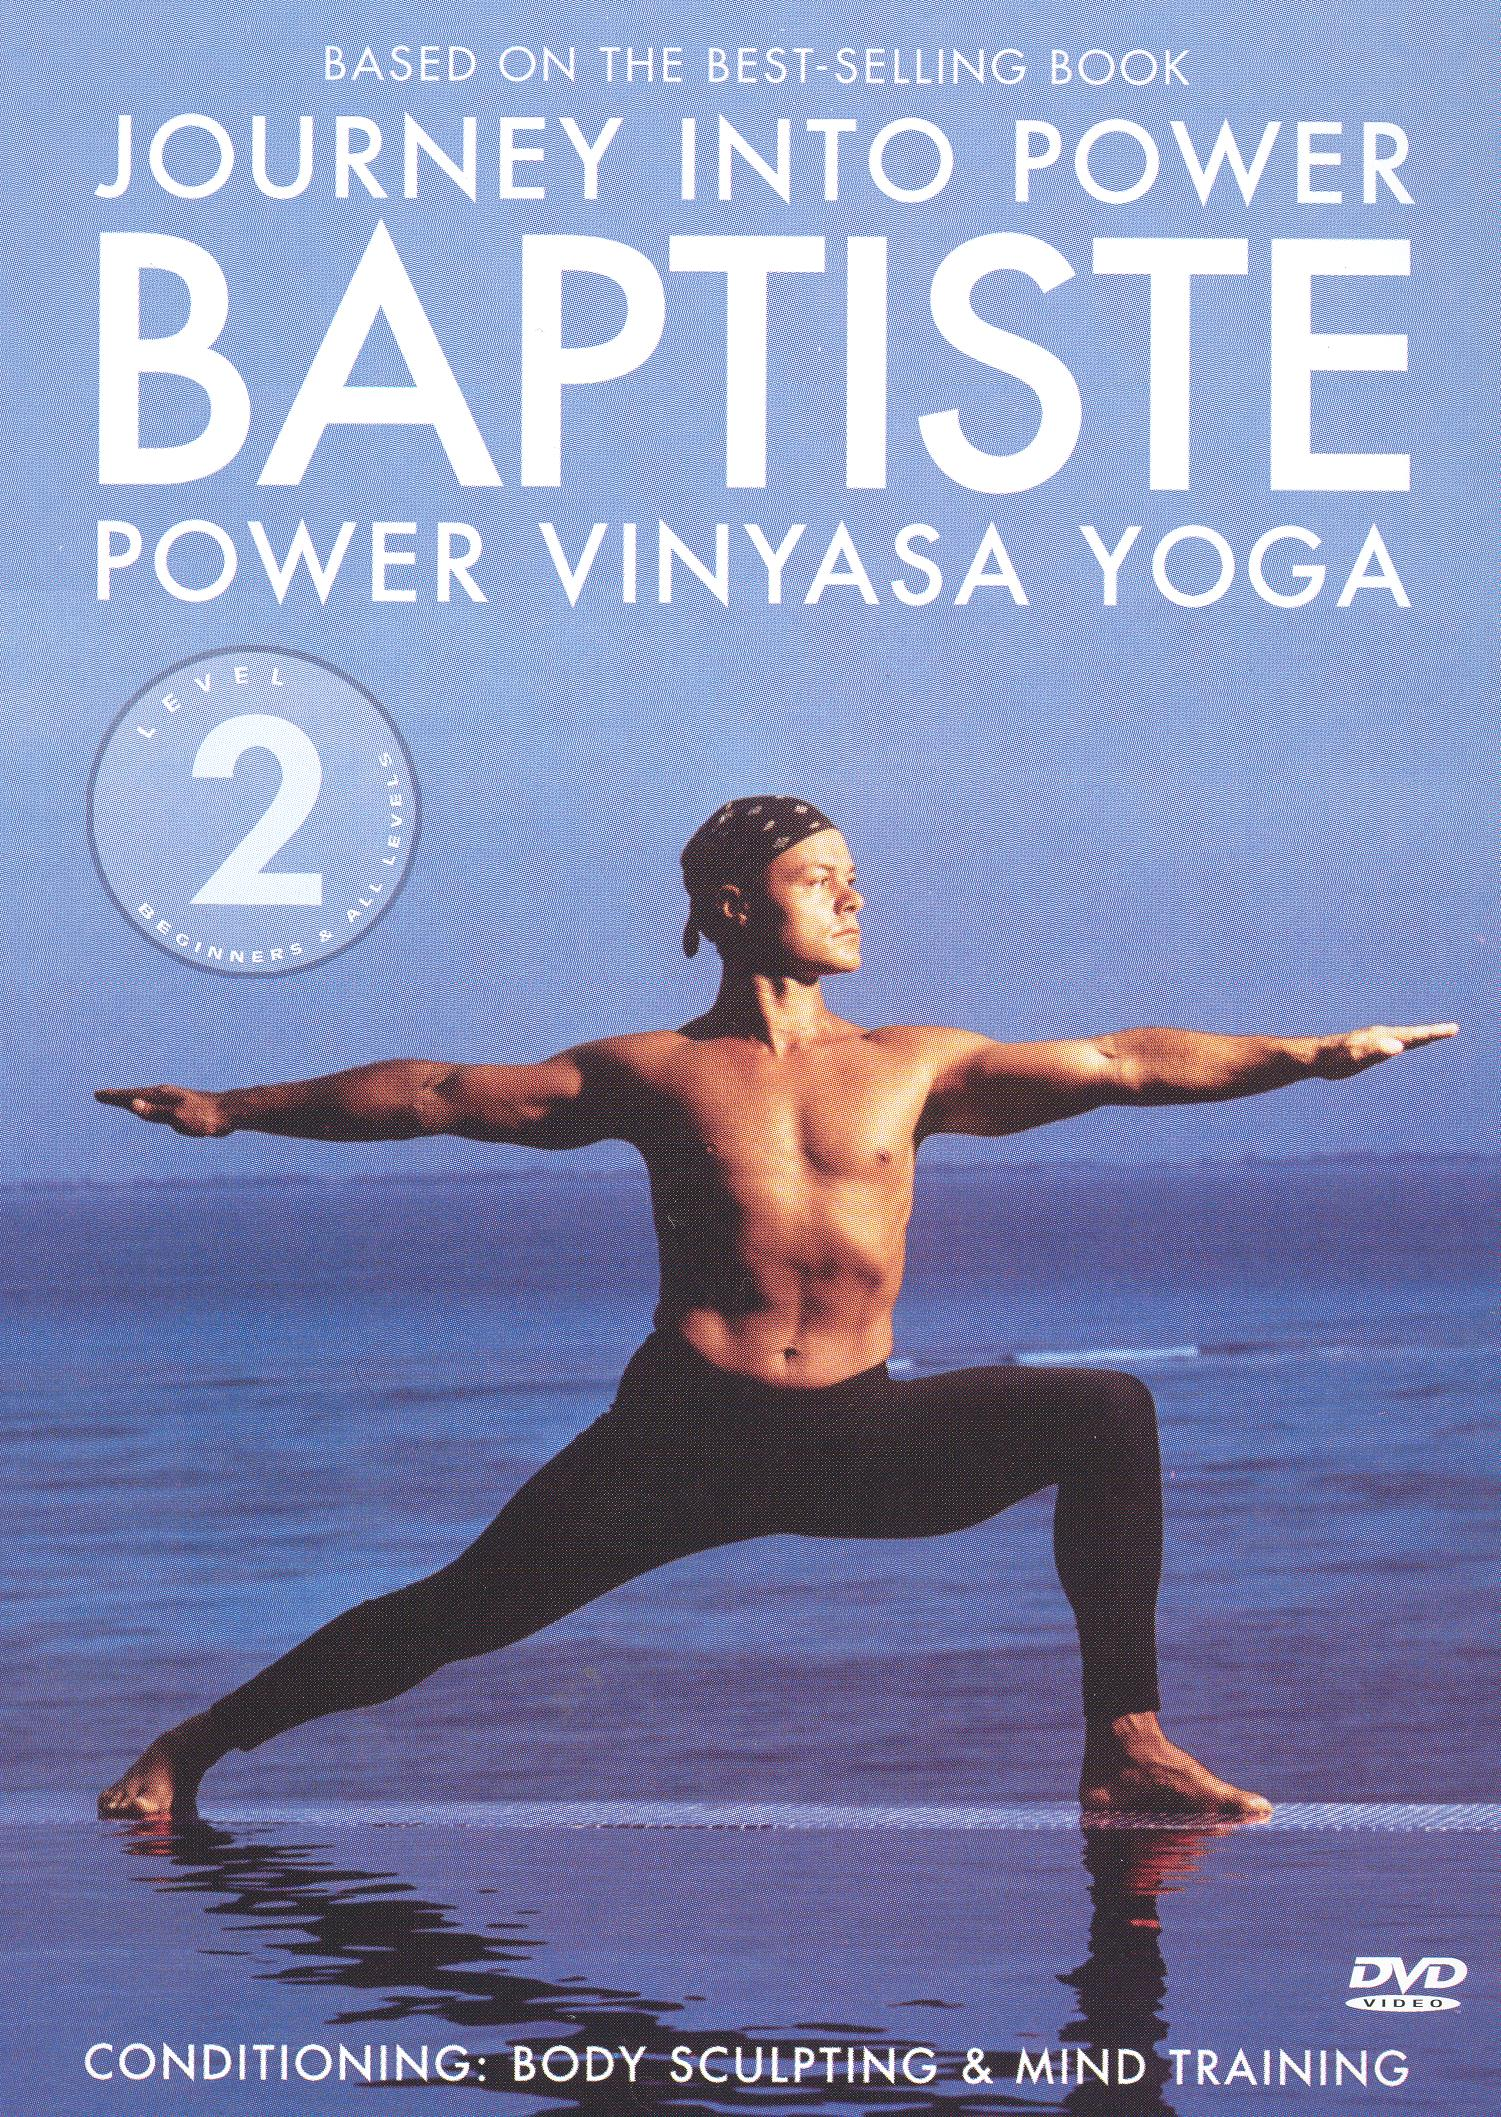 Baron Baptiste: Journey Into Power, Level 2 - Power Vinyasa Yoga